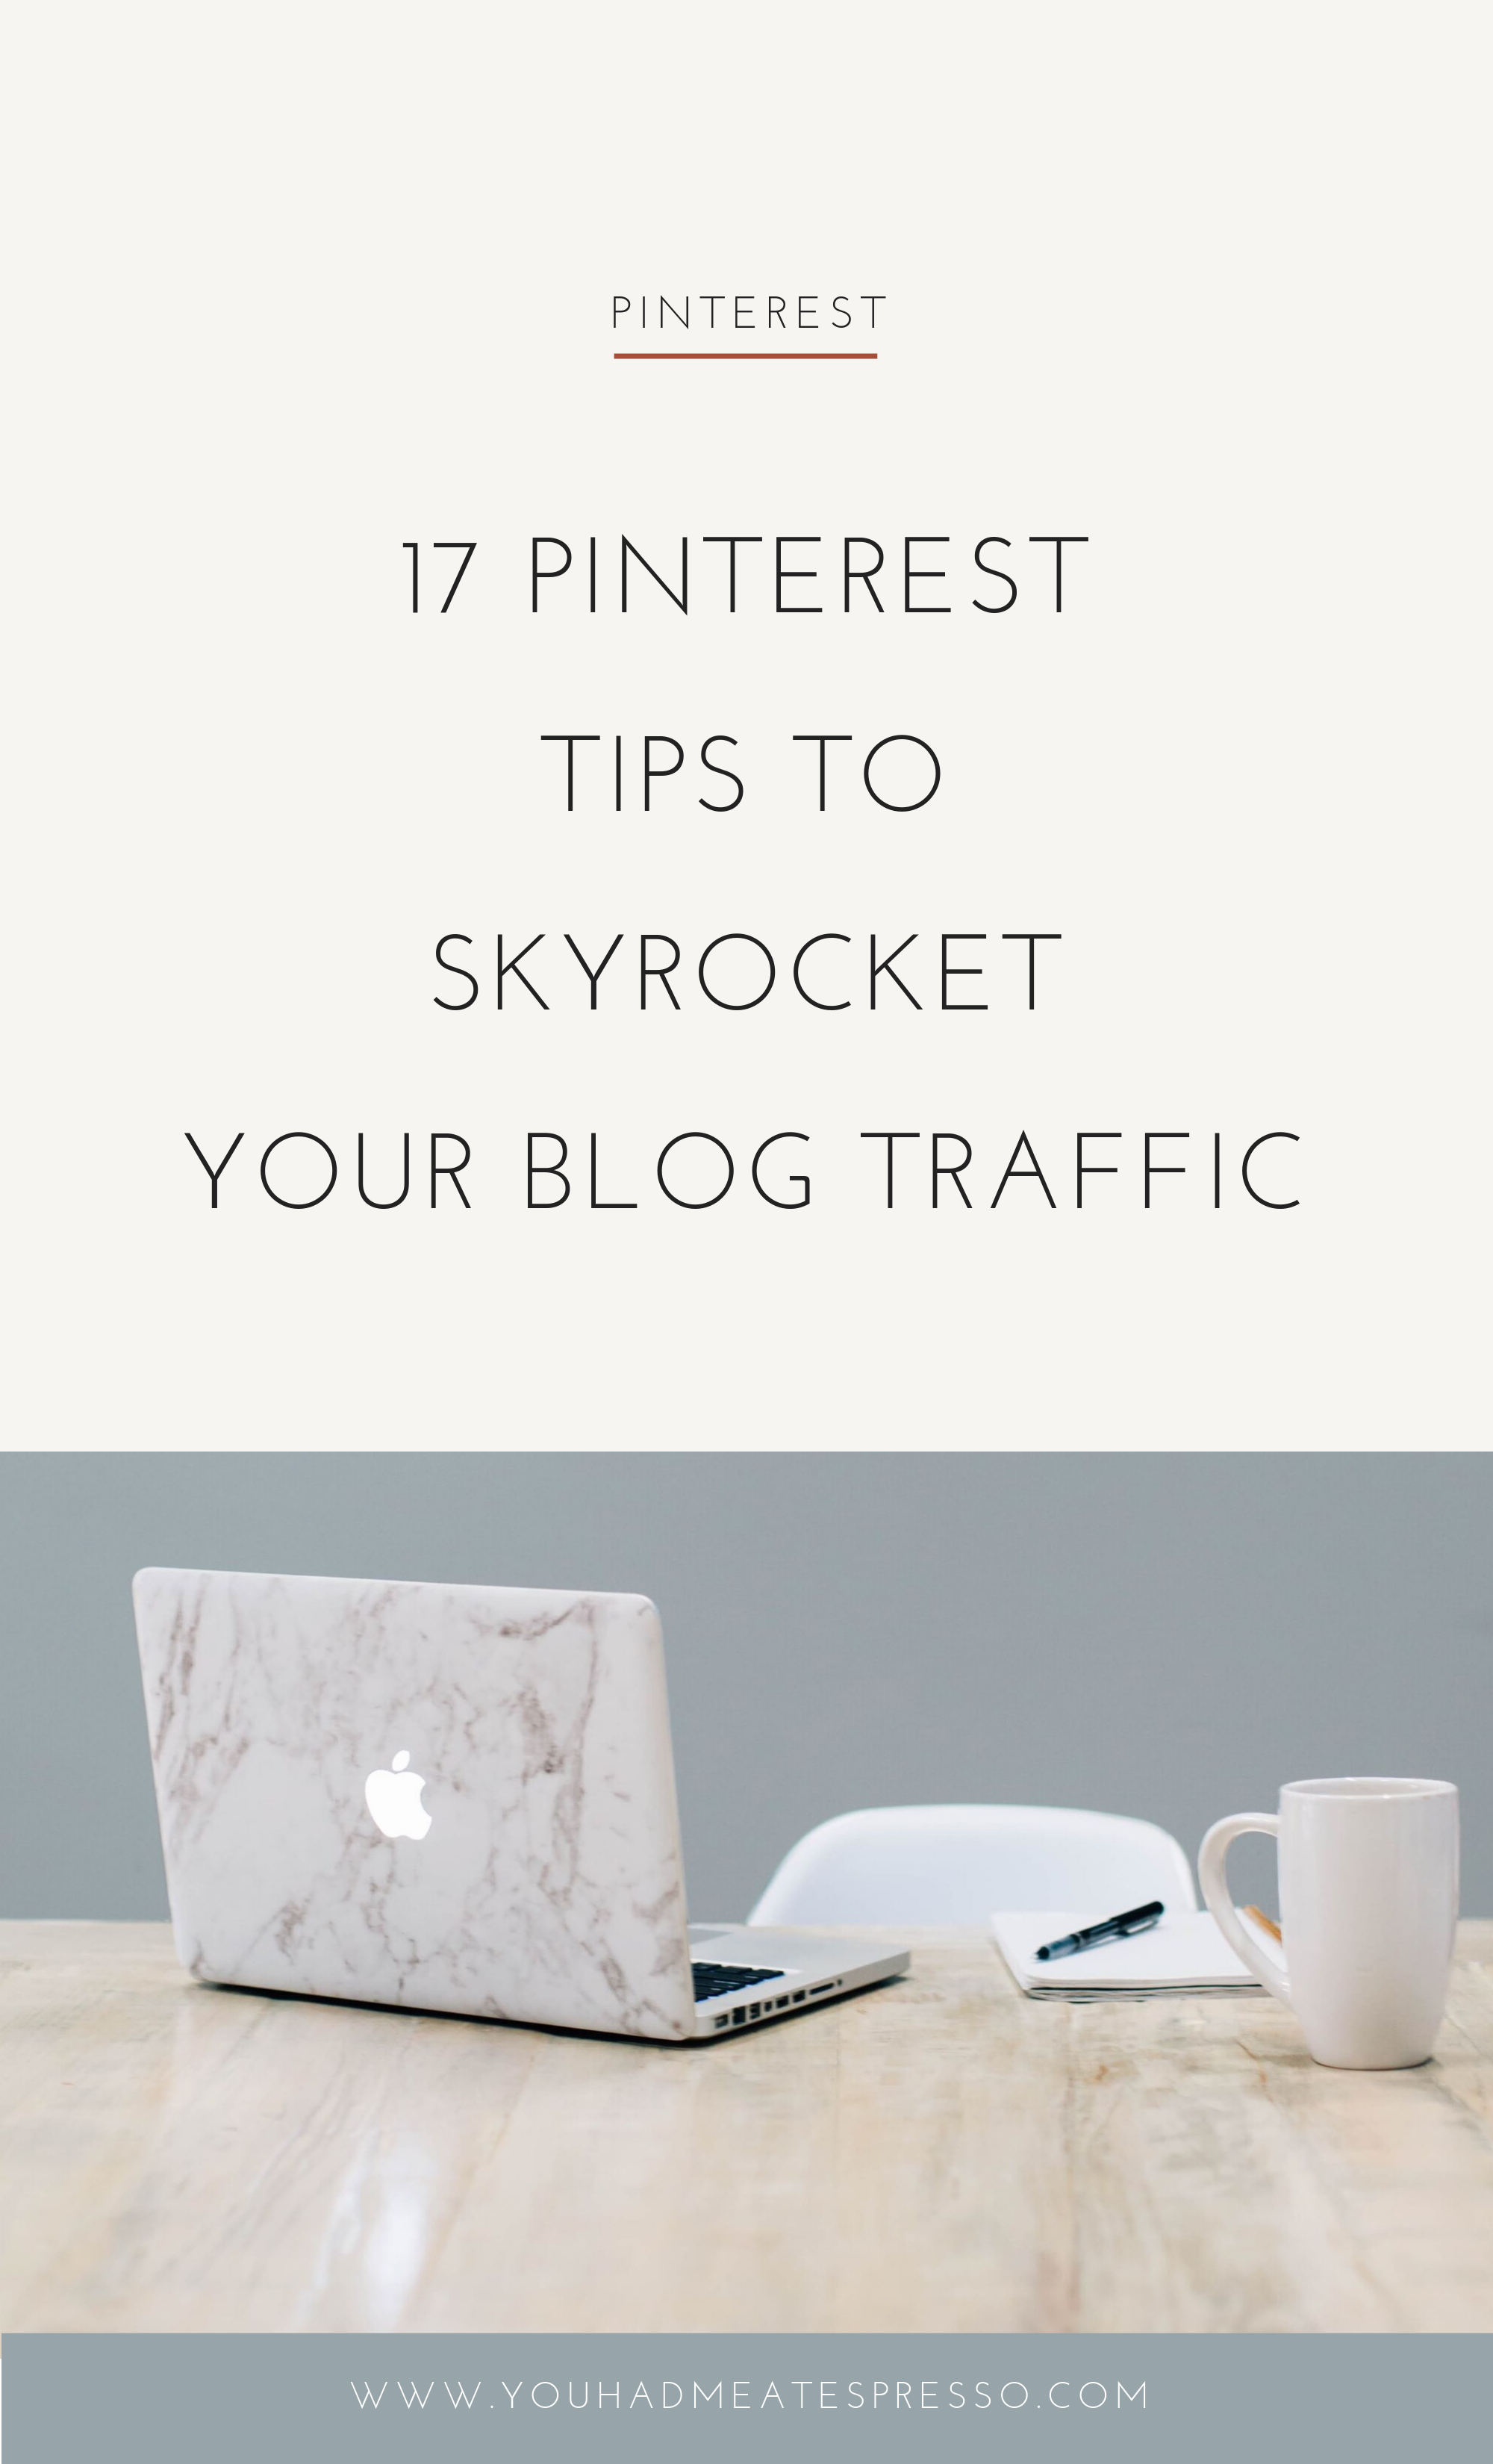 17 pinterest tips to skyrockets your blog traffic 1.png